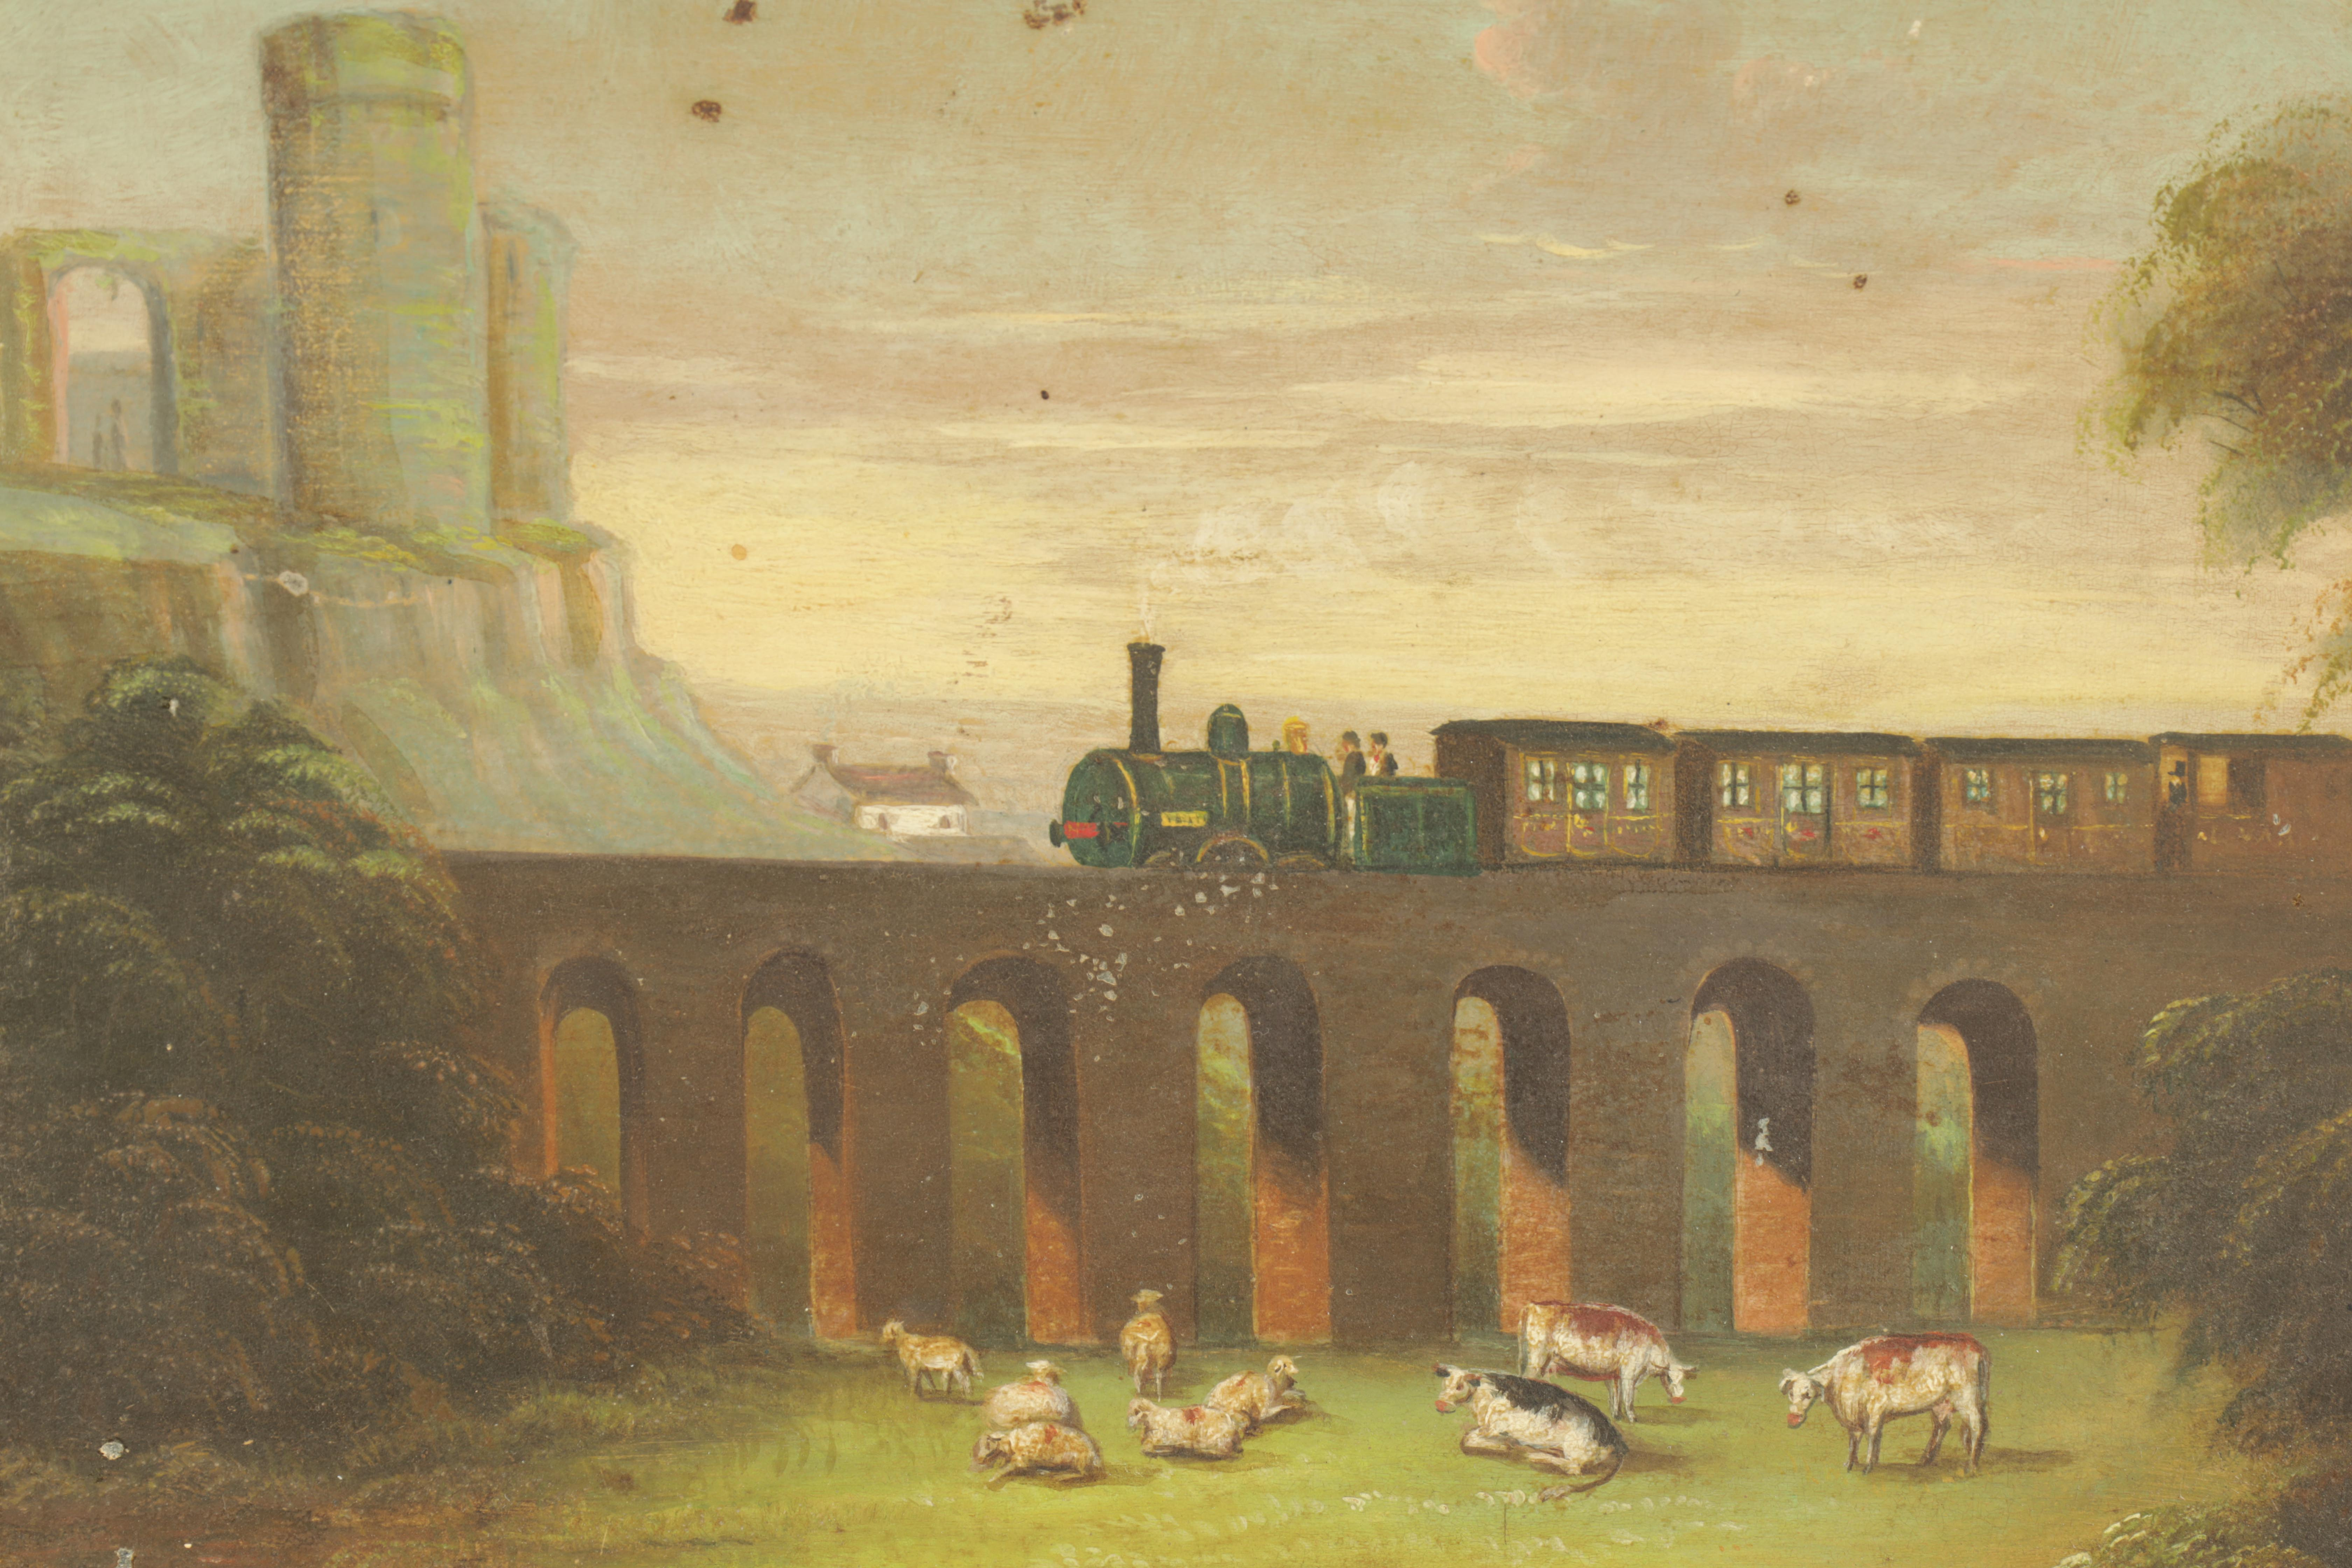 A 19TH CENTURY NIAEVELY PAINTED OILON TIN depicting a steam train on a viaduct with cattle in the - Image 2 of 3